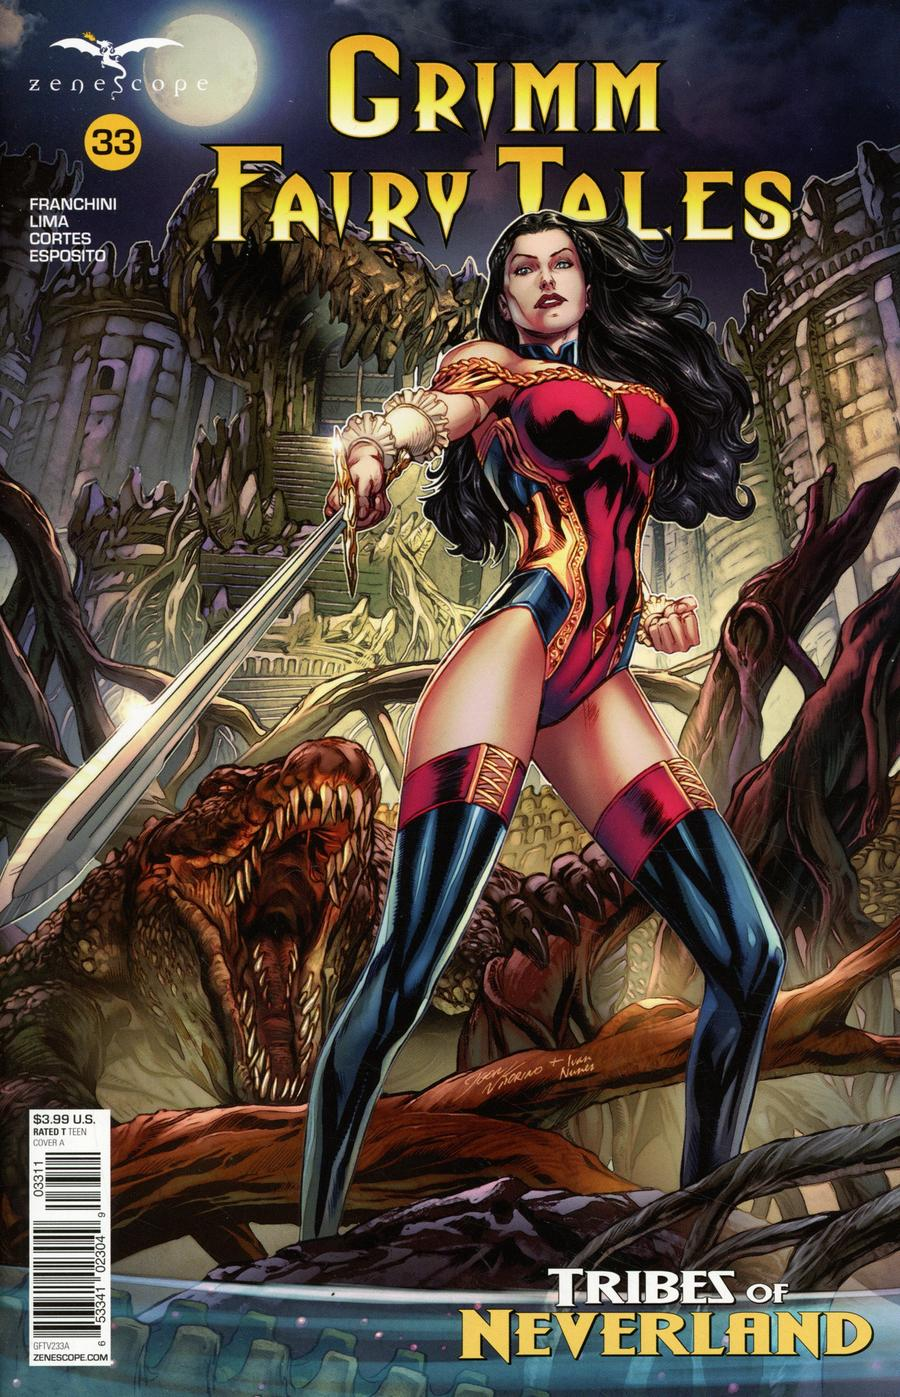 Grimm Fairy Tales Vol 2 #33 Cover A Igor Vitorino